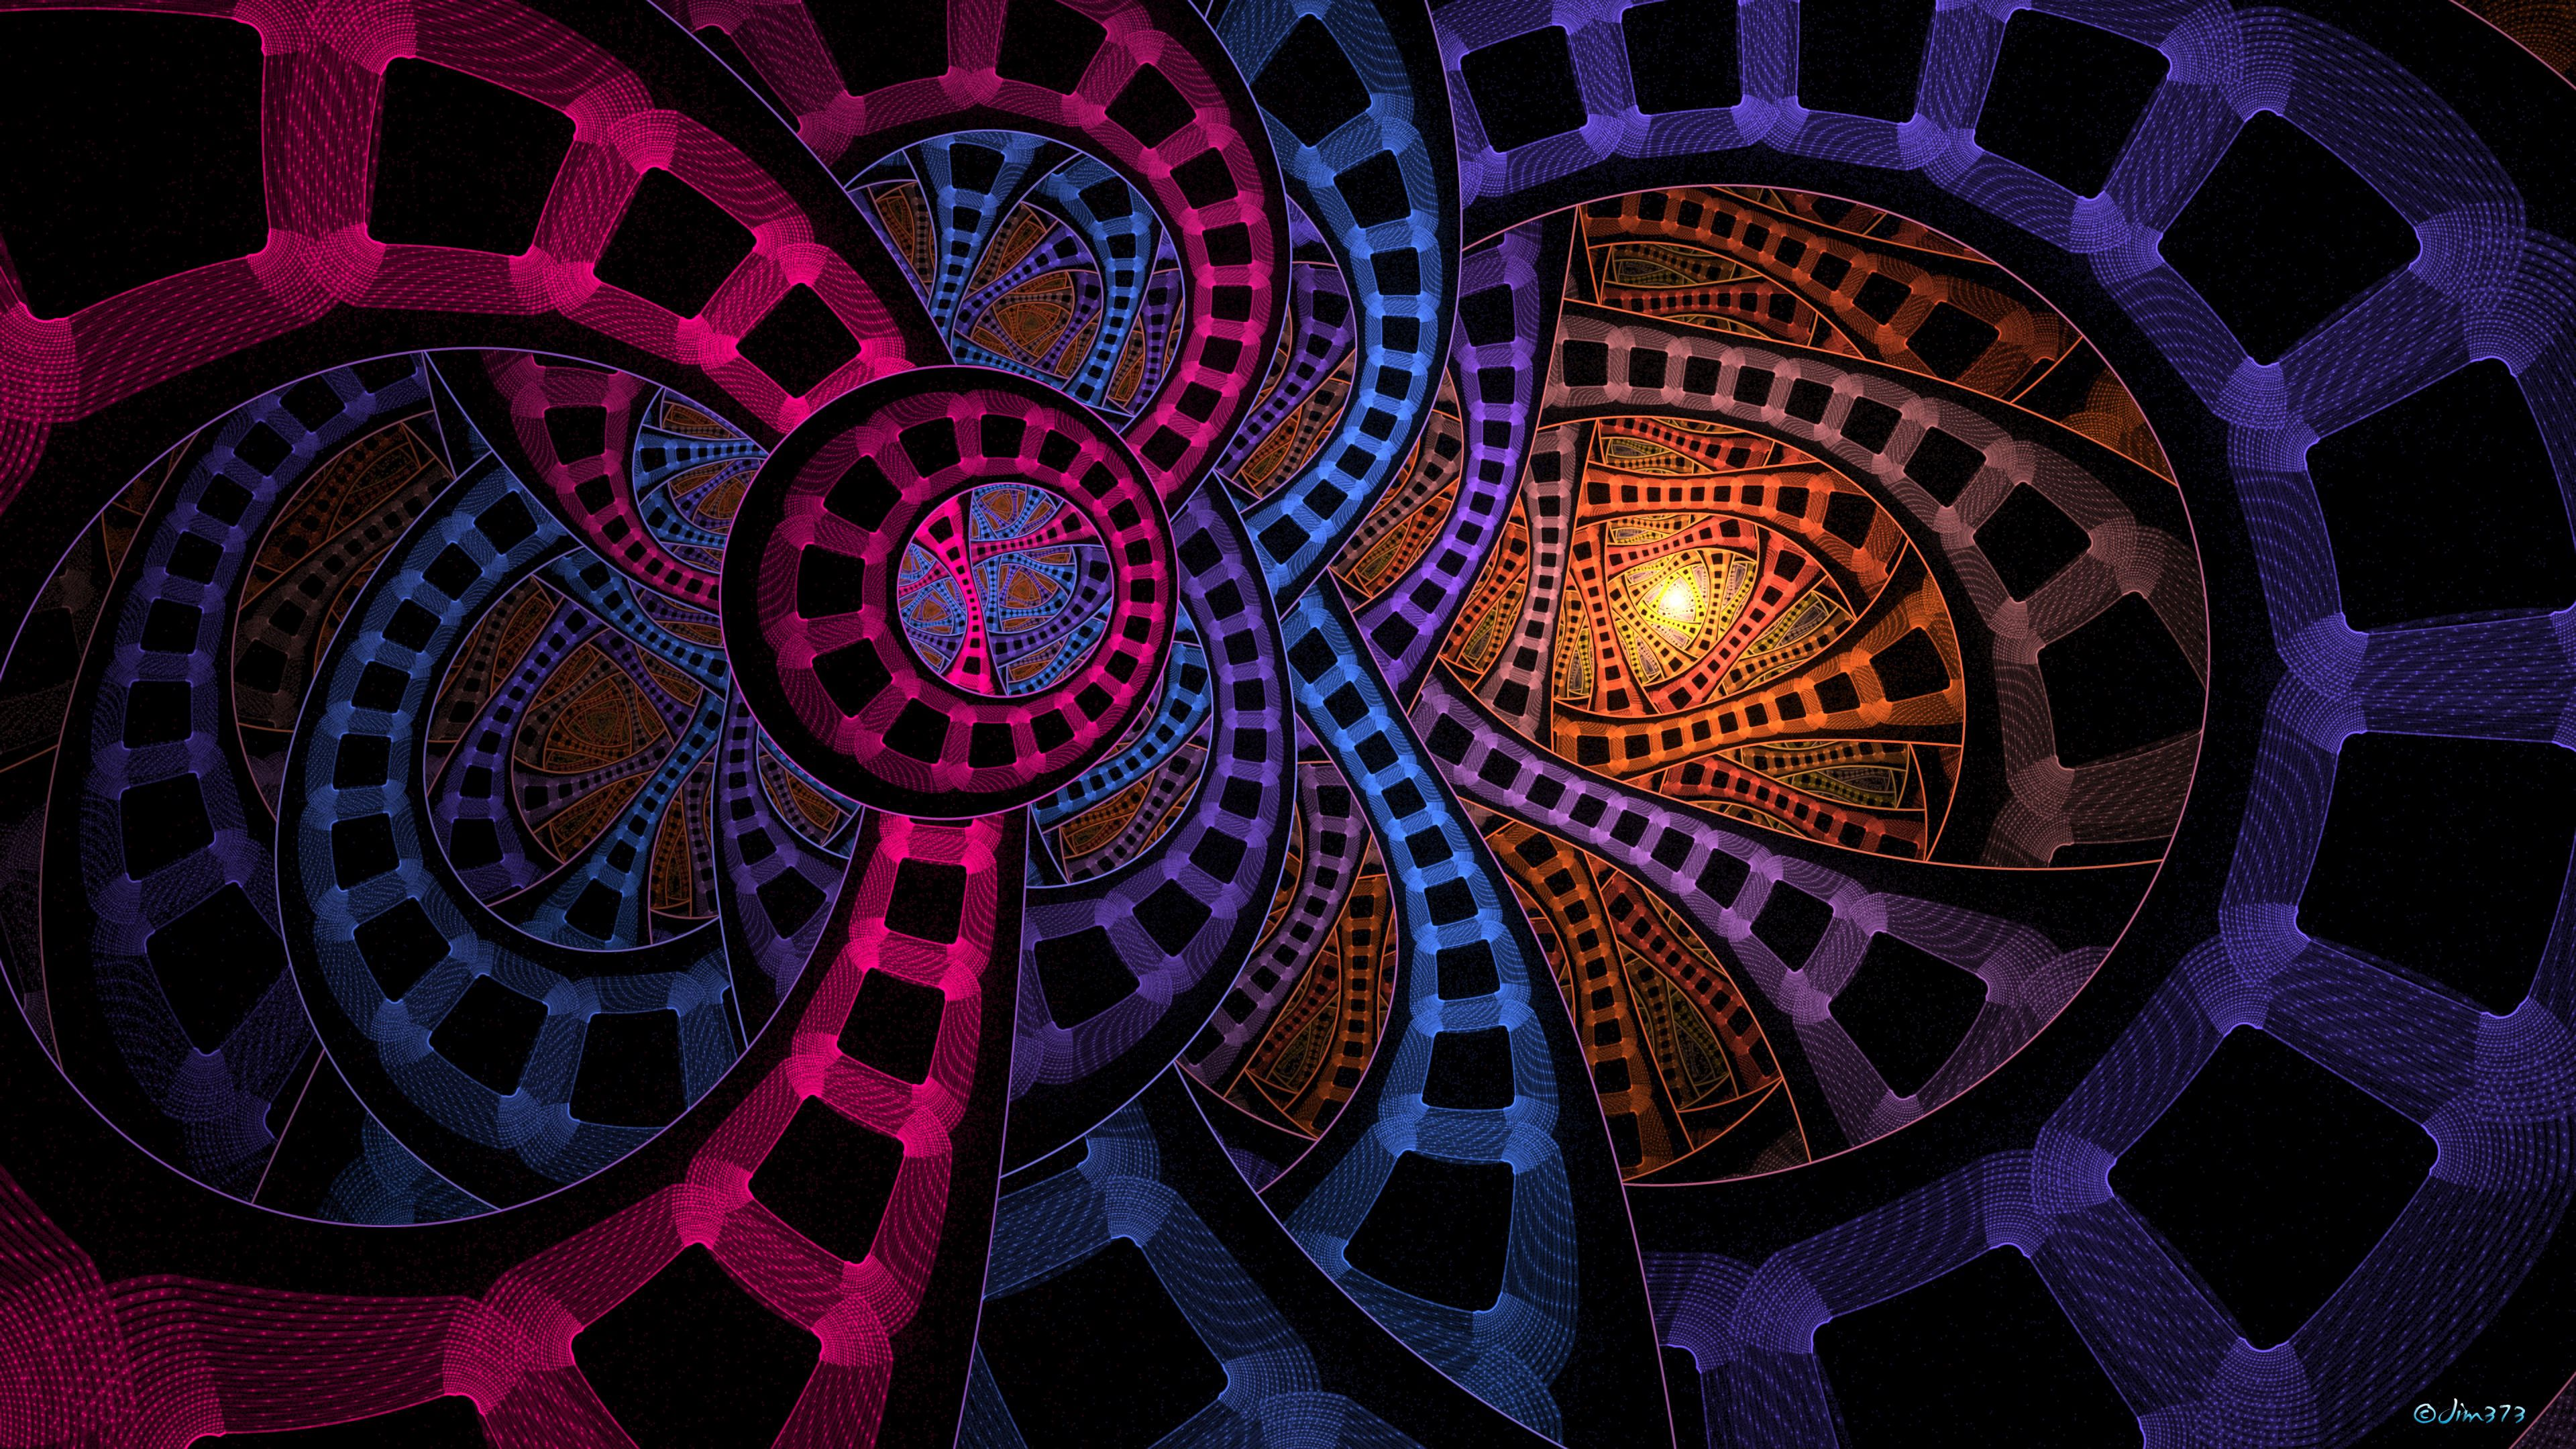 110382 download wallpaper Abstract, Fractal, Multicolored, Motley, Weave, Confused, Intricate screensavers and pictures for free